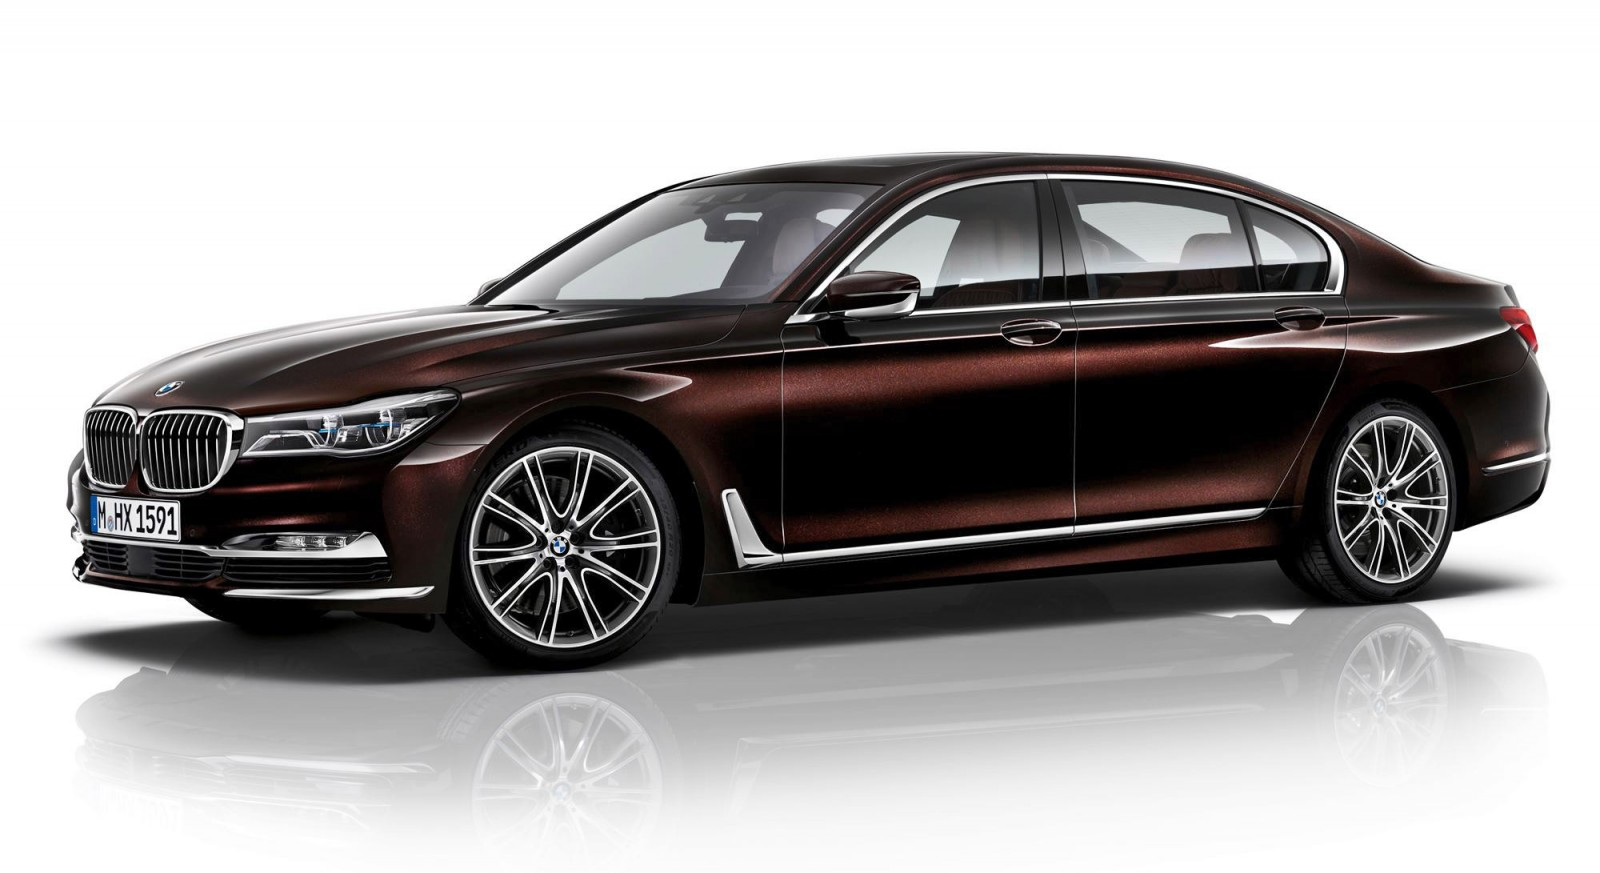 2016 BMW 750 Exterior Photos 68